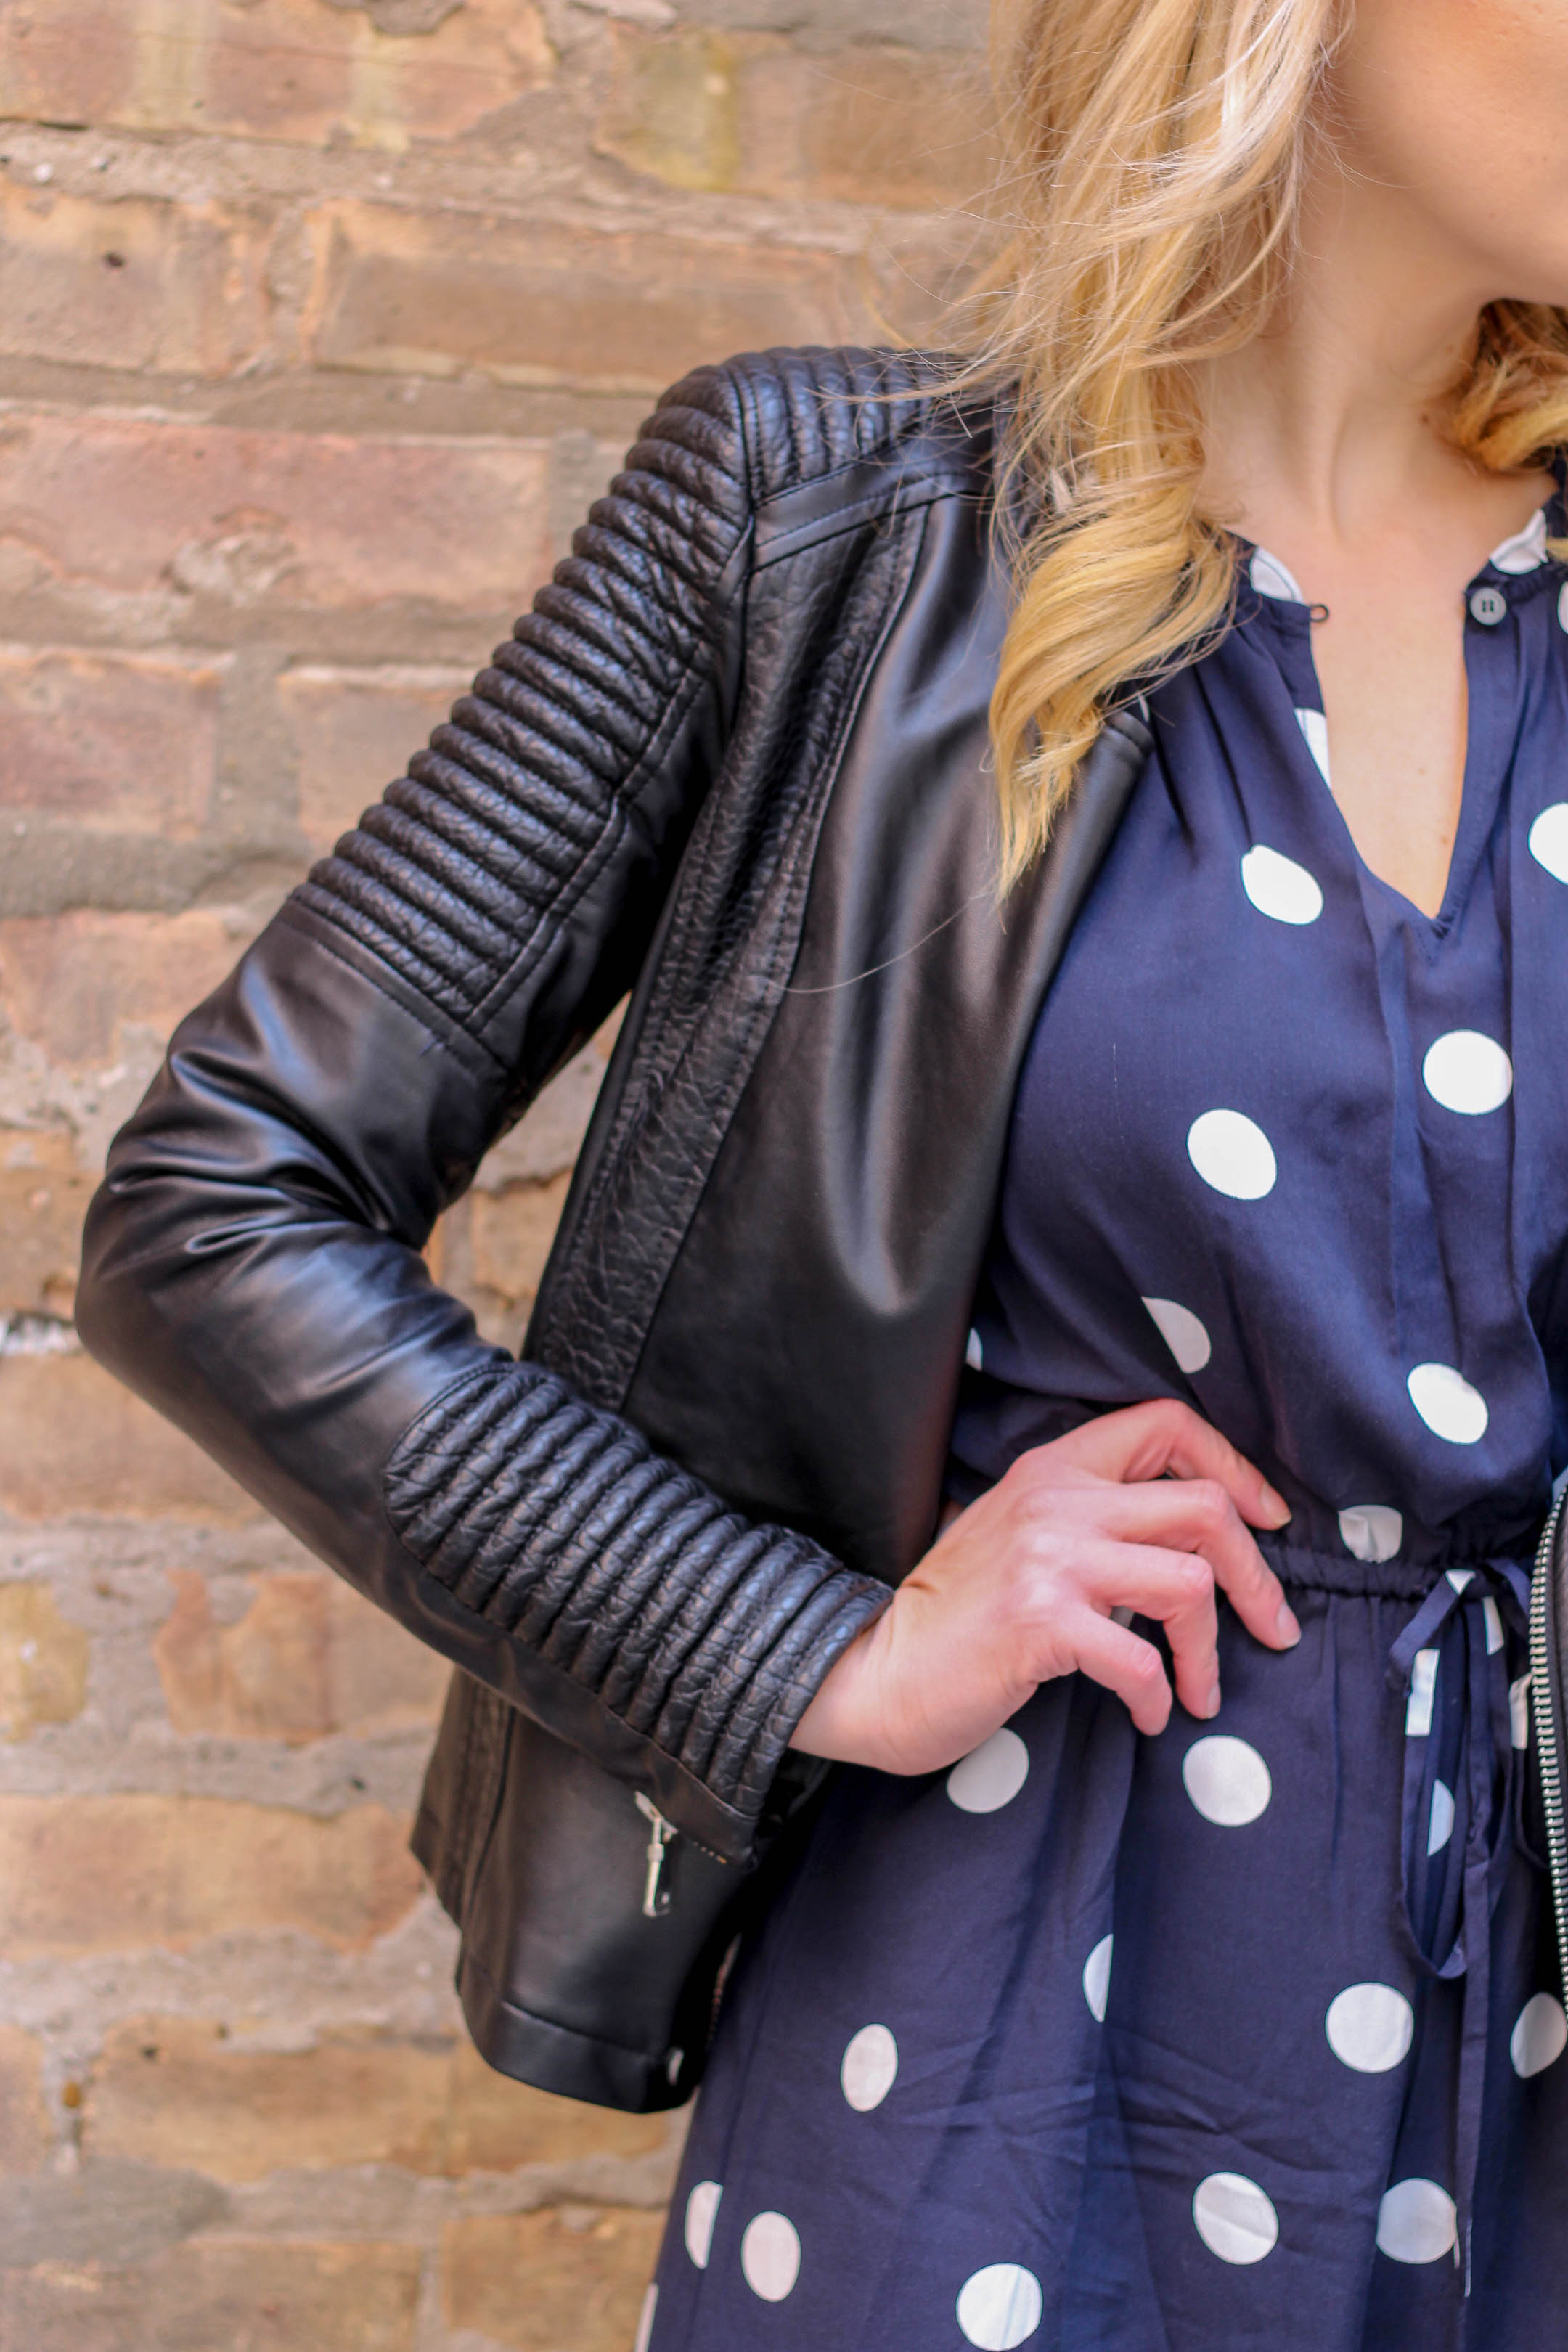 How to wear a faux leather moto jacket this spring